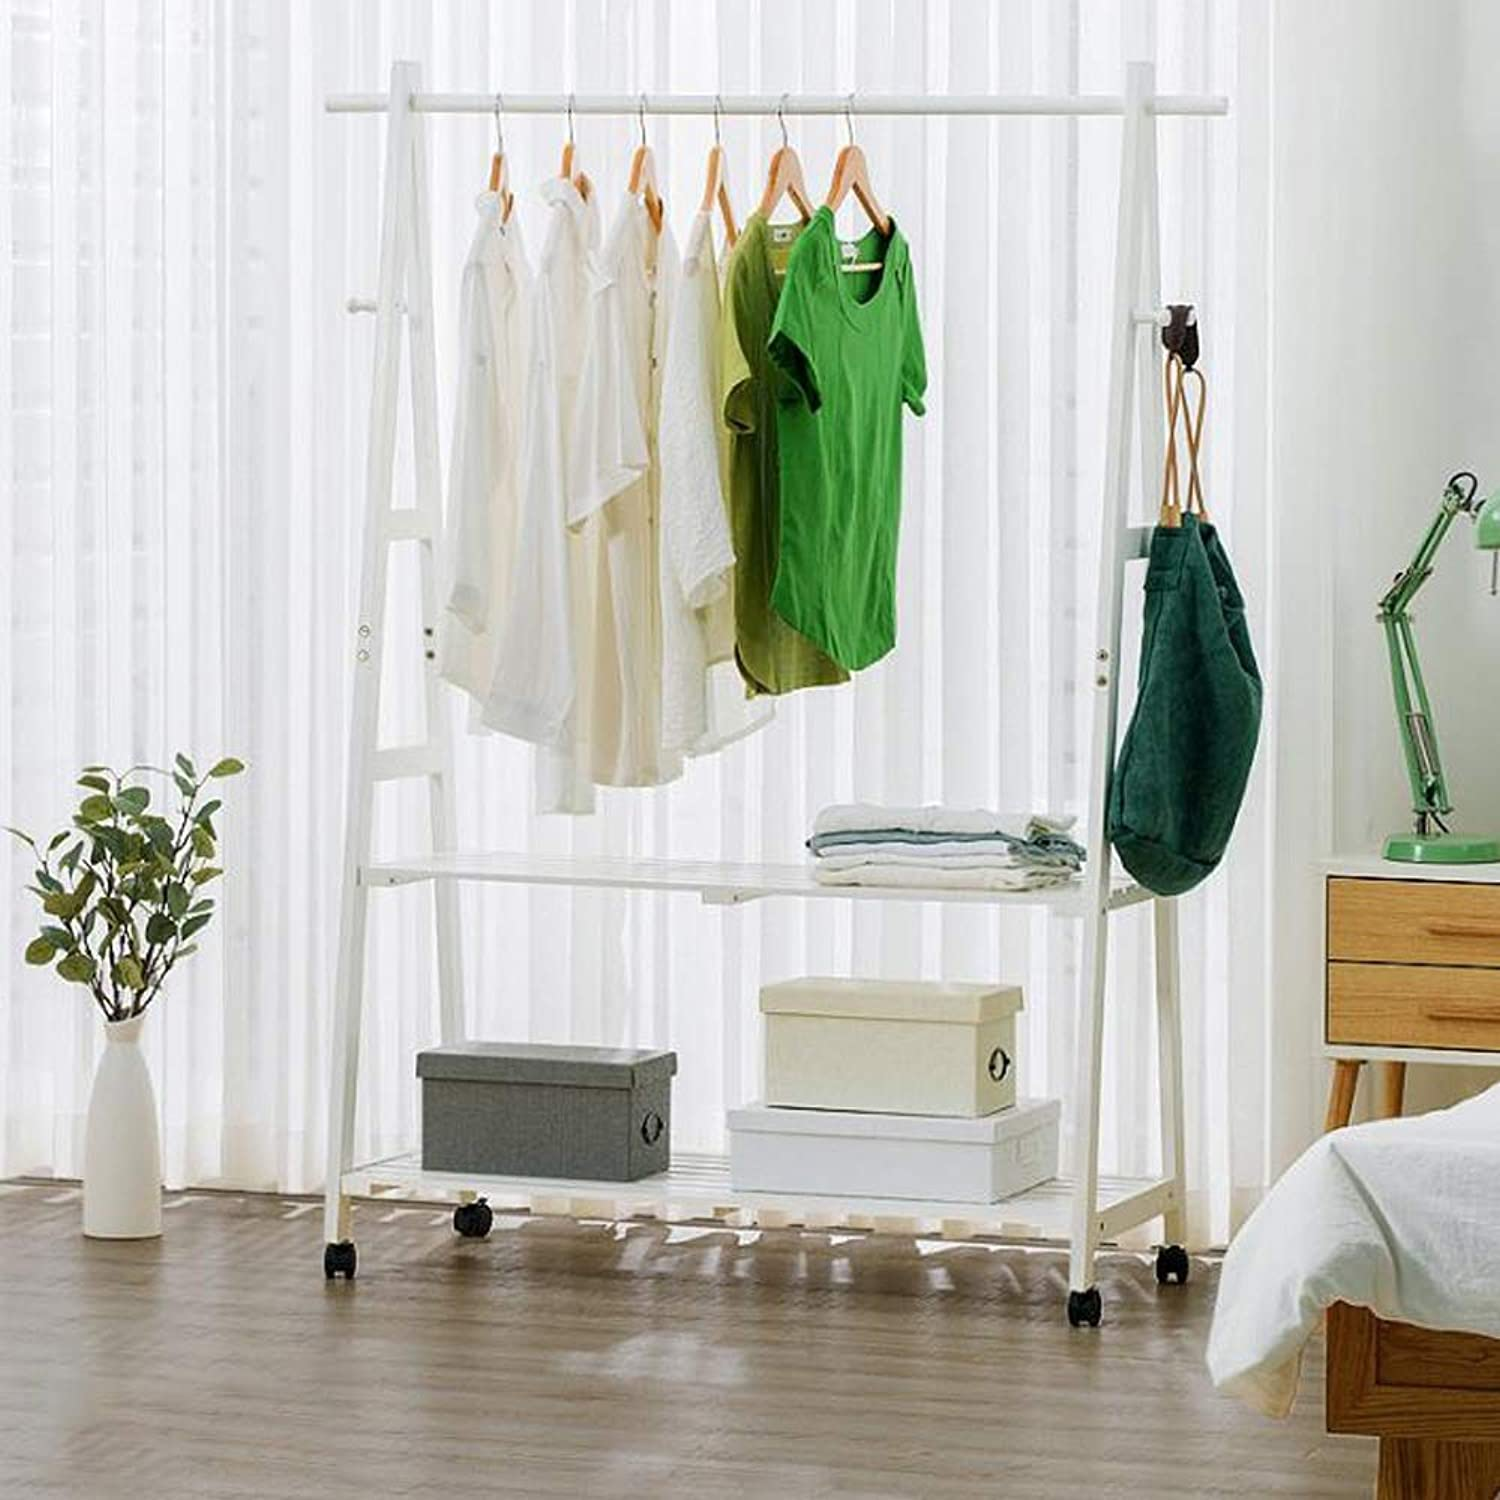 Coat Rack, 2 Tier Hat and Coat Stand,Coat Rack, shoes Rack with Wheels and 2 Shelves in Wood Look, 4 Hooks, Wood Frame (color   White, Size   60  45  149CM)